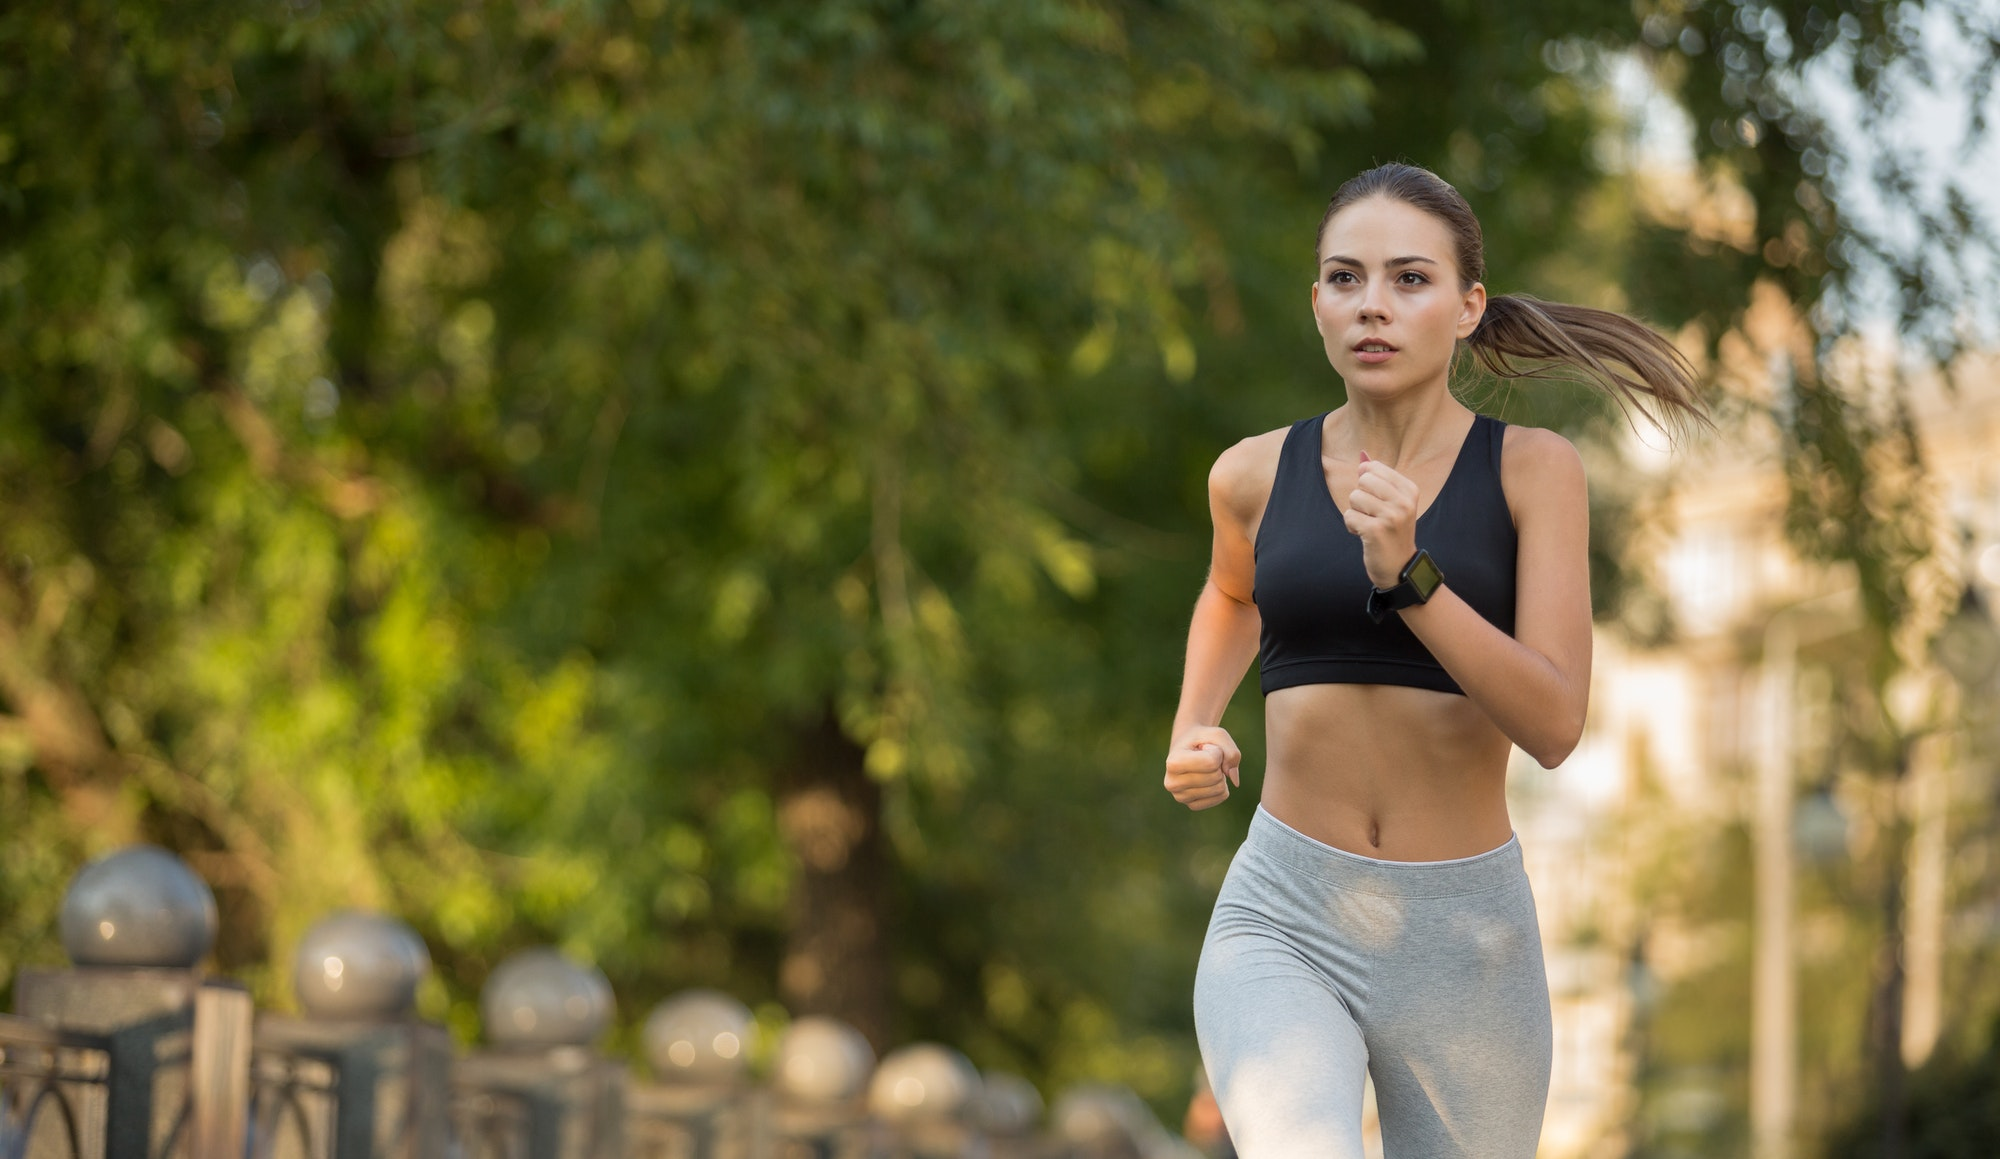 Motivated millennial woman running forward to goal